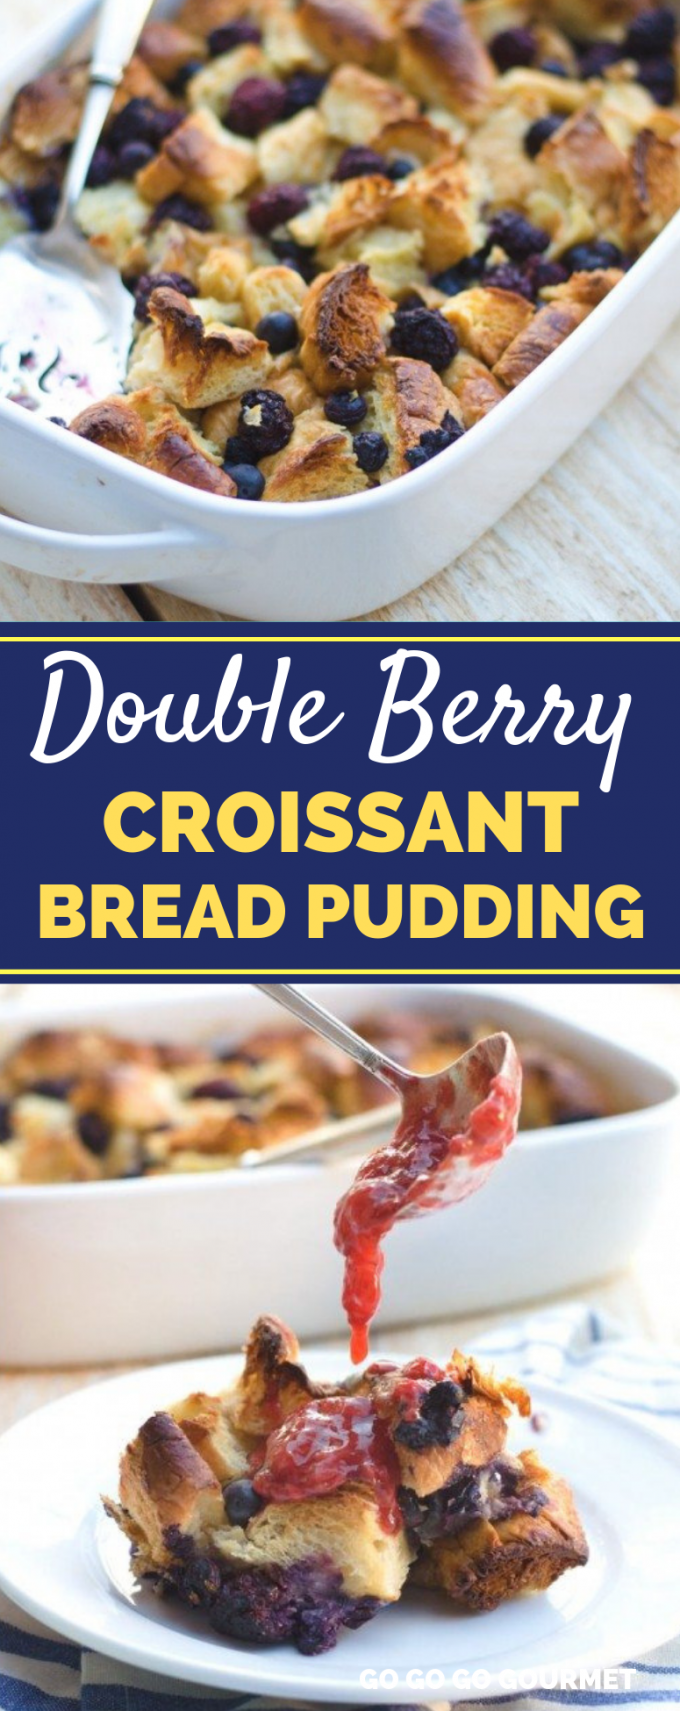 This easy Double Berry Croissant Bread Pudding recipe makes a great breakfast casserole or dessert! With flaky croissants, orange zest, strawberries, blackberries and blueberries, you are going to fall in love with this bread pudding recipe! #gogogogourmet #breadpudding #croissantbreadpudding #berrybreadpudding via @gogogogourmet